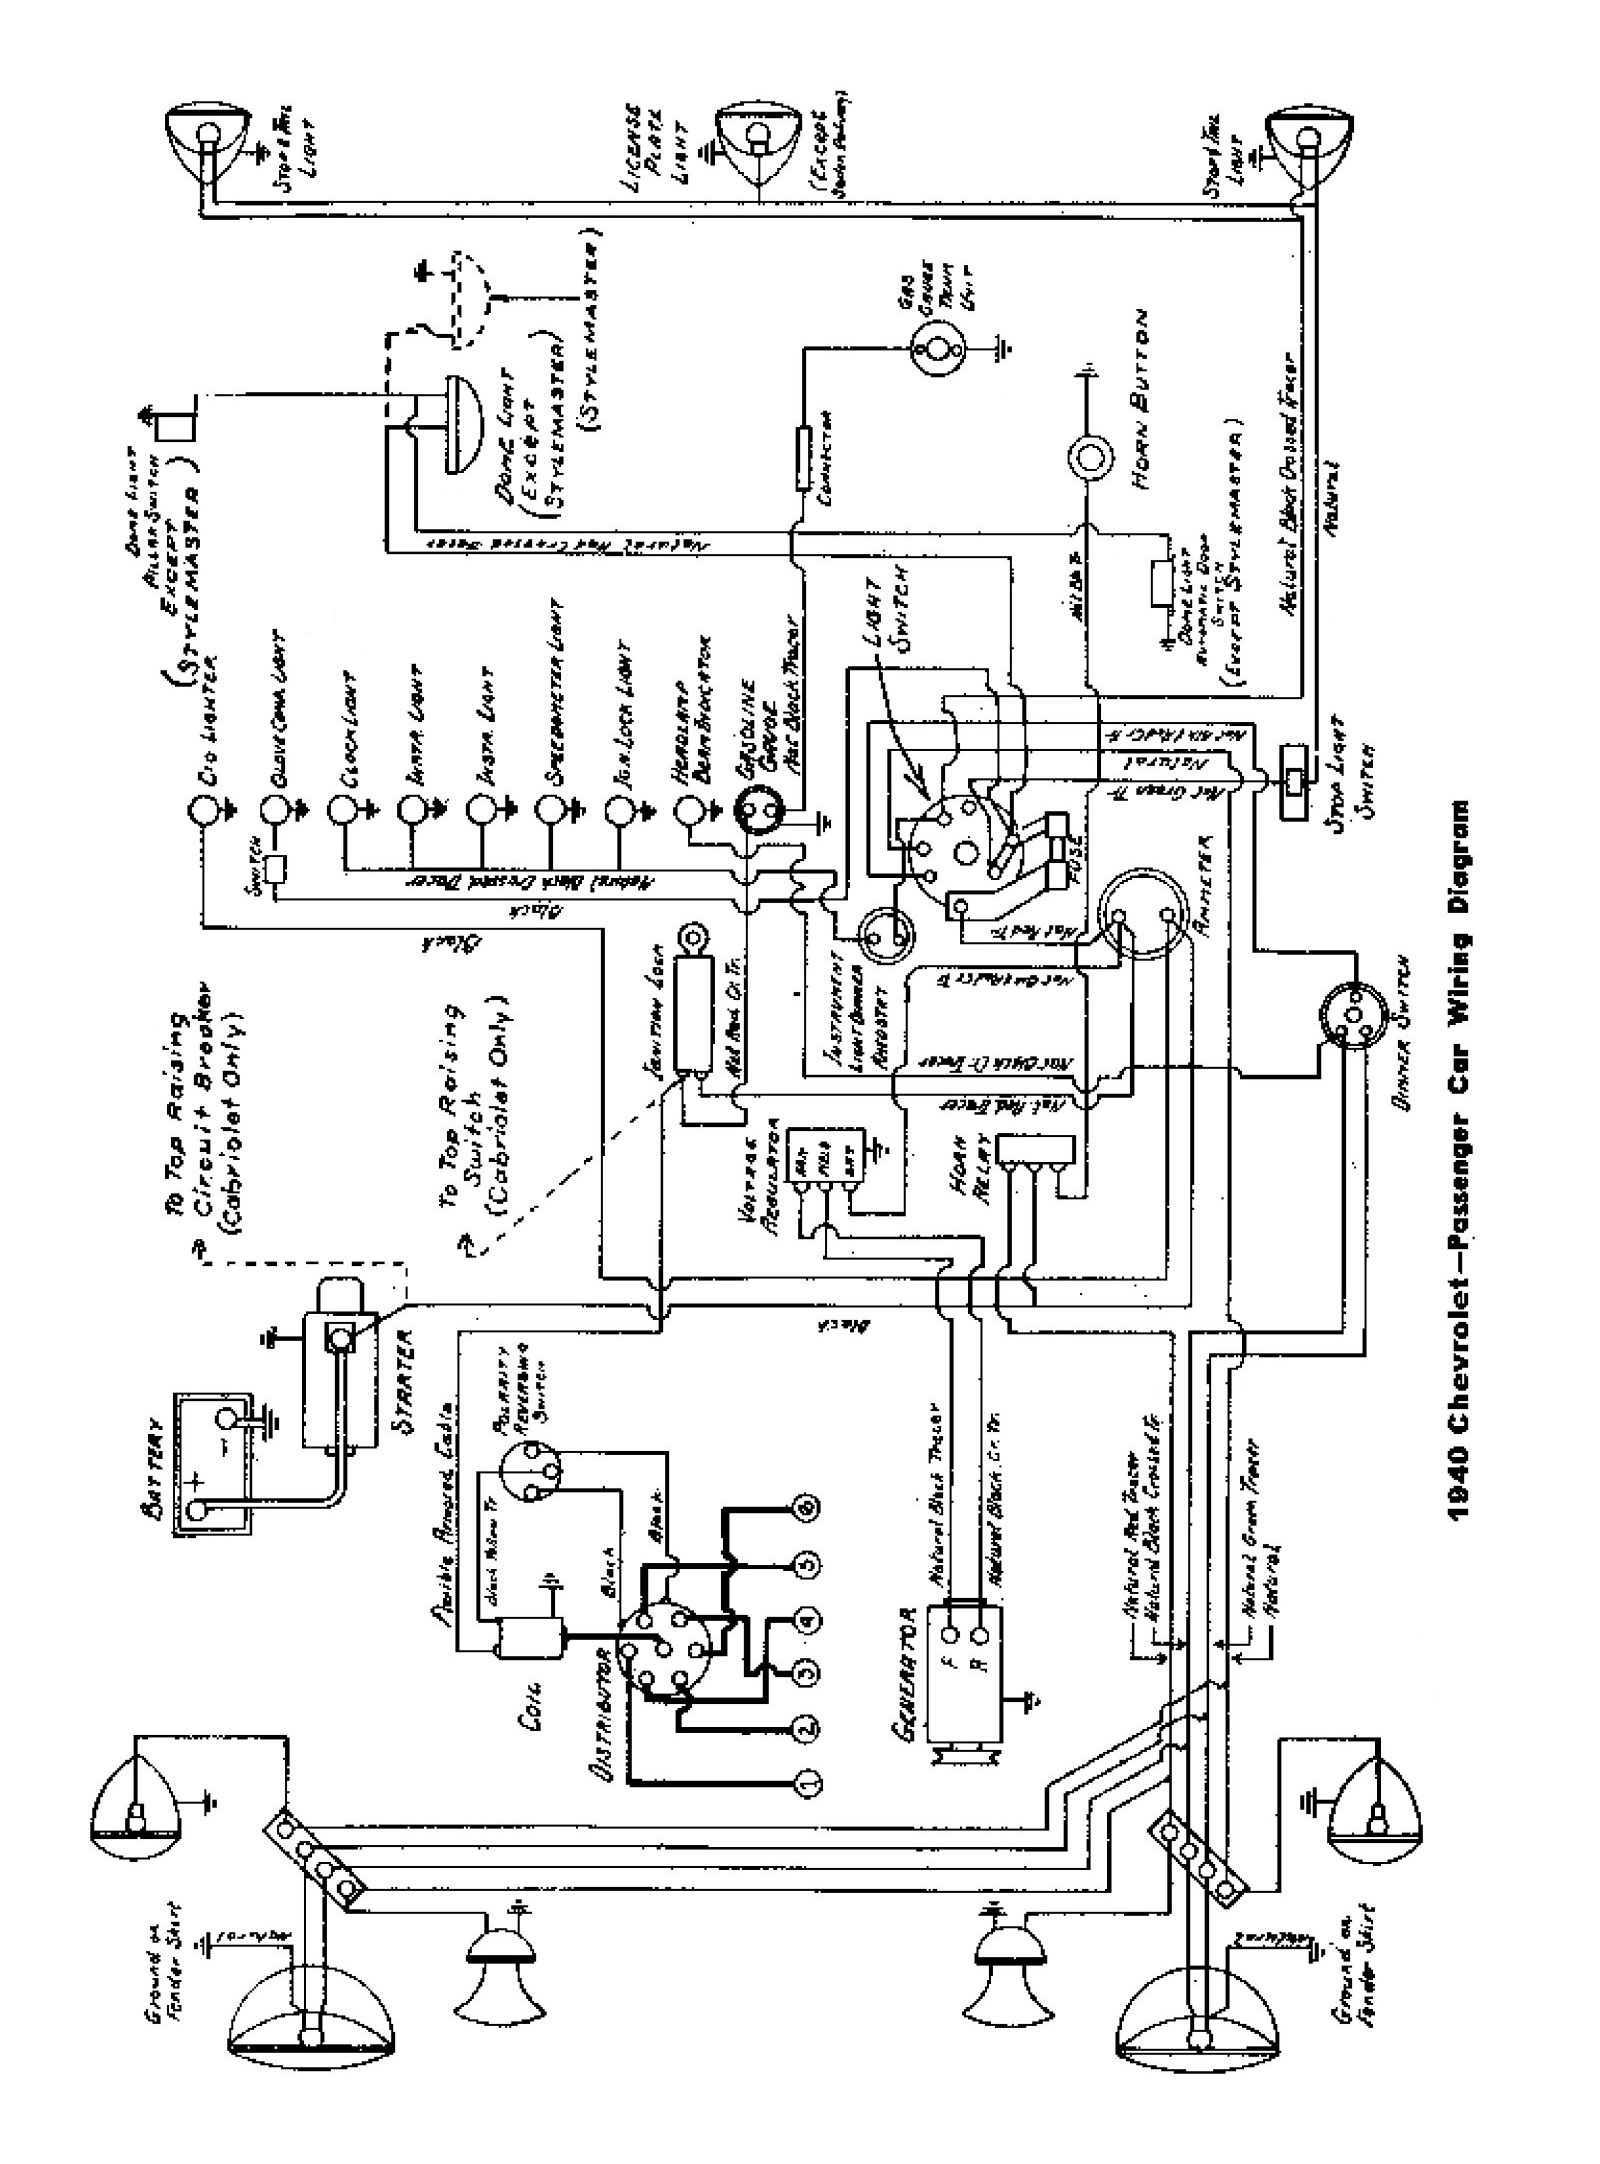 1939 pontiac wiring diagram get free image about wiring diagram rh linxglobal co Chevy Wiring Harness Diagram 1936 chevy truck wiring diagram